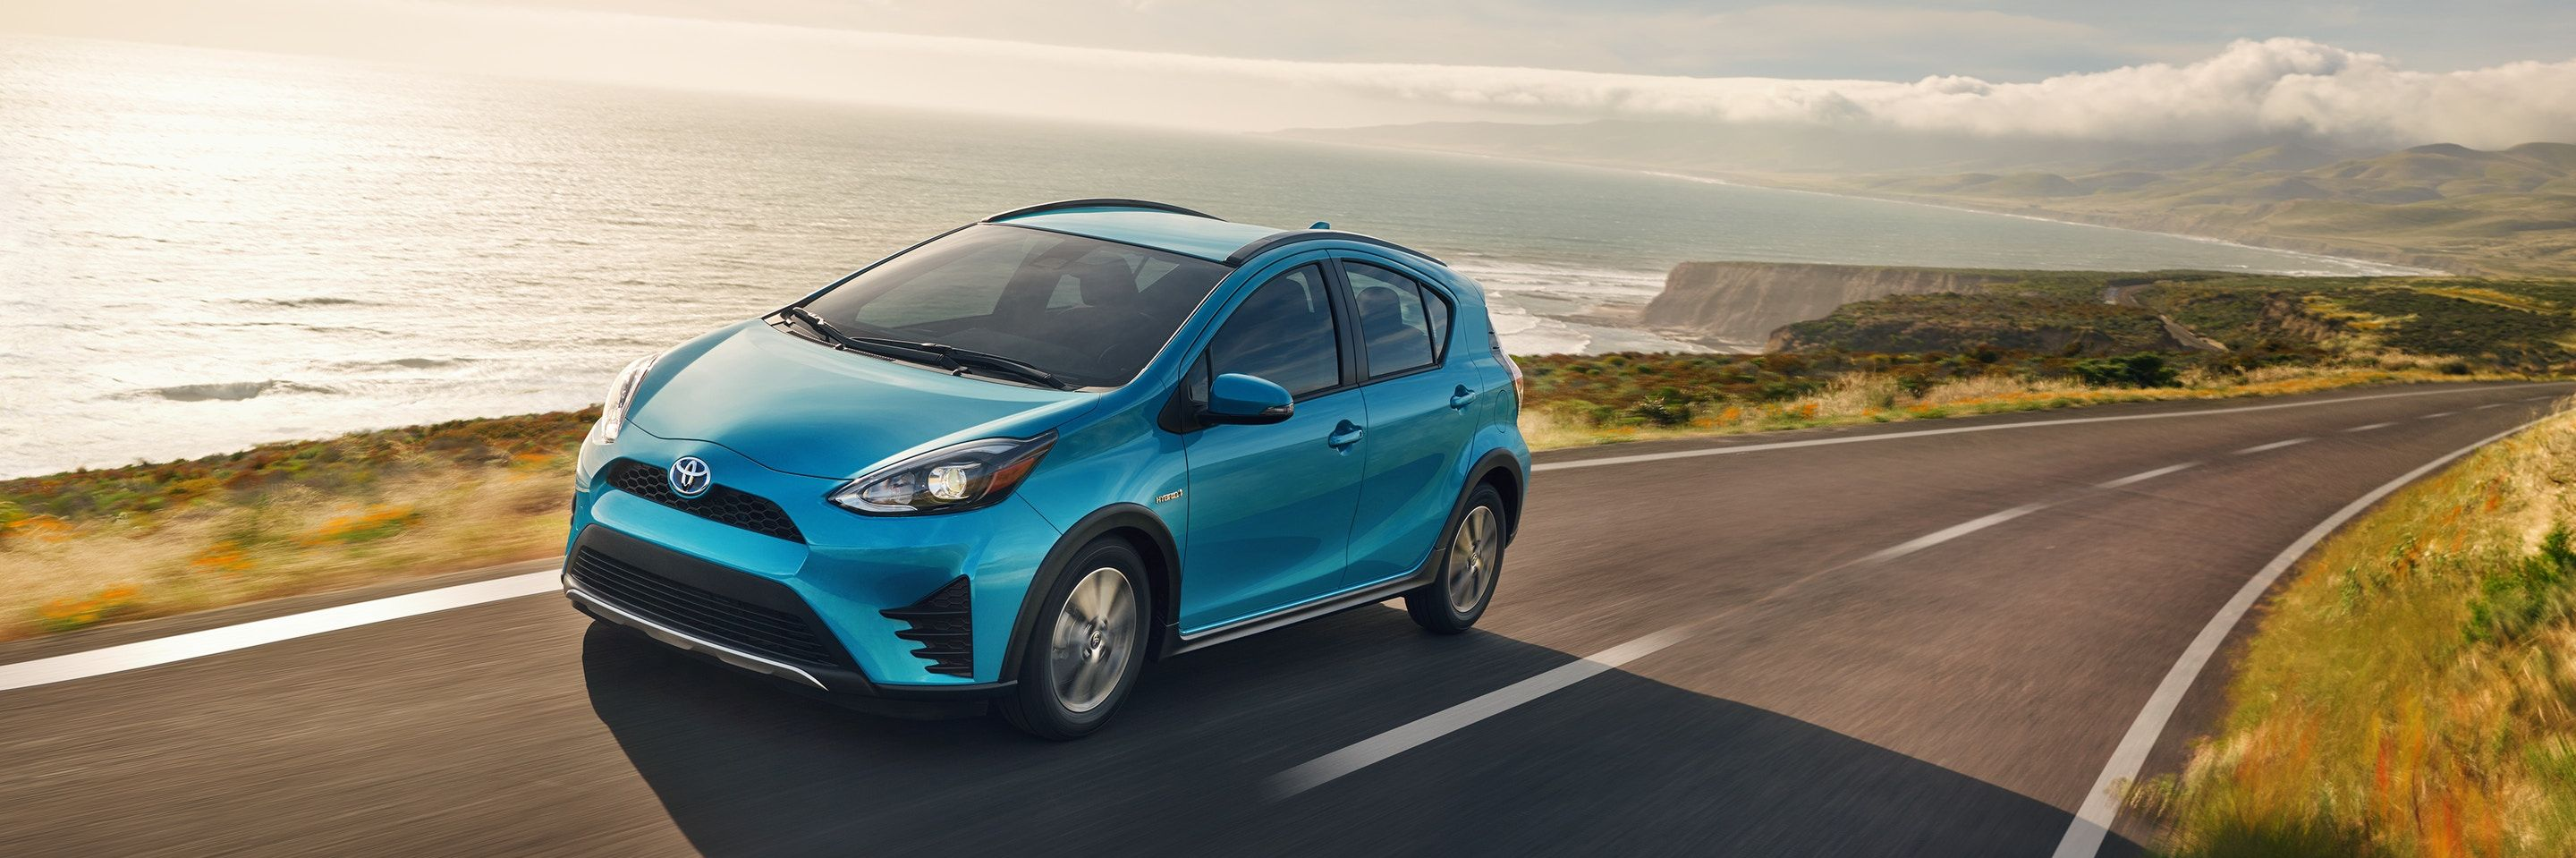 2019 Toyota Prius c for Sale near Lee's Summit, MO, 64002